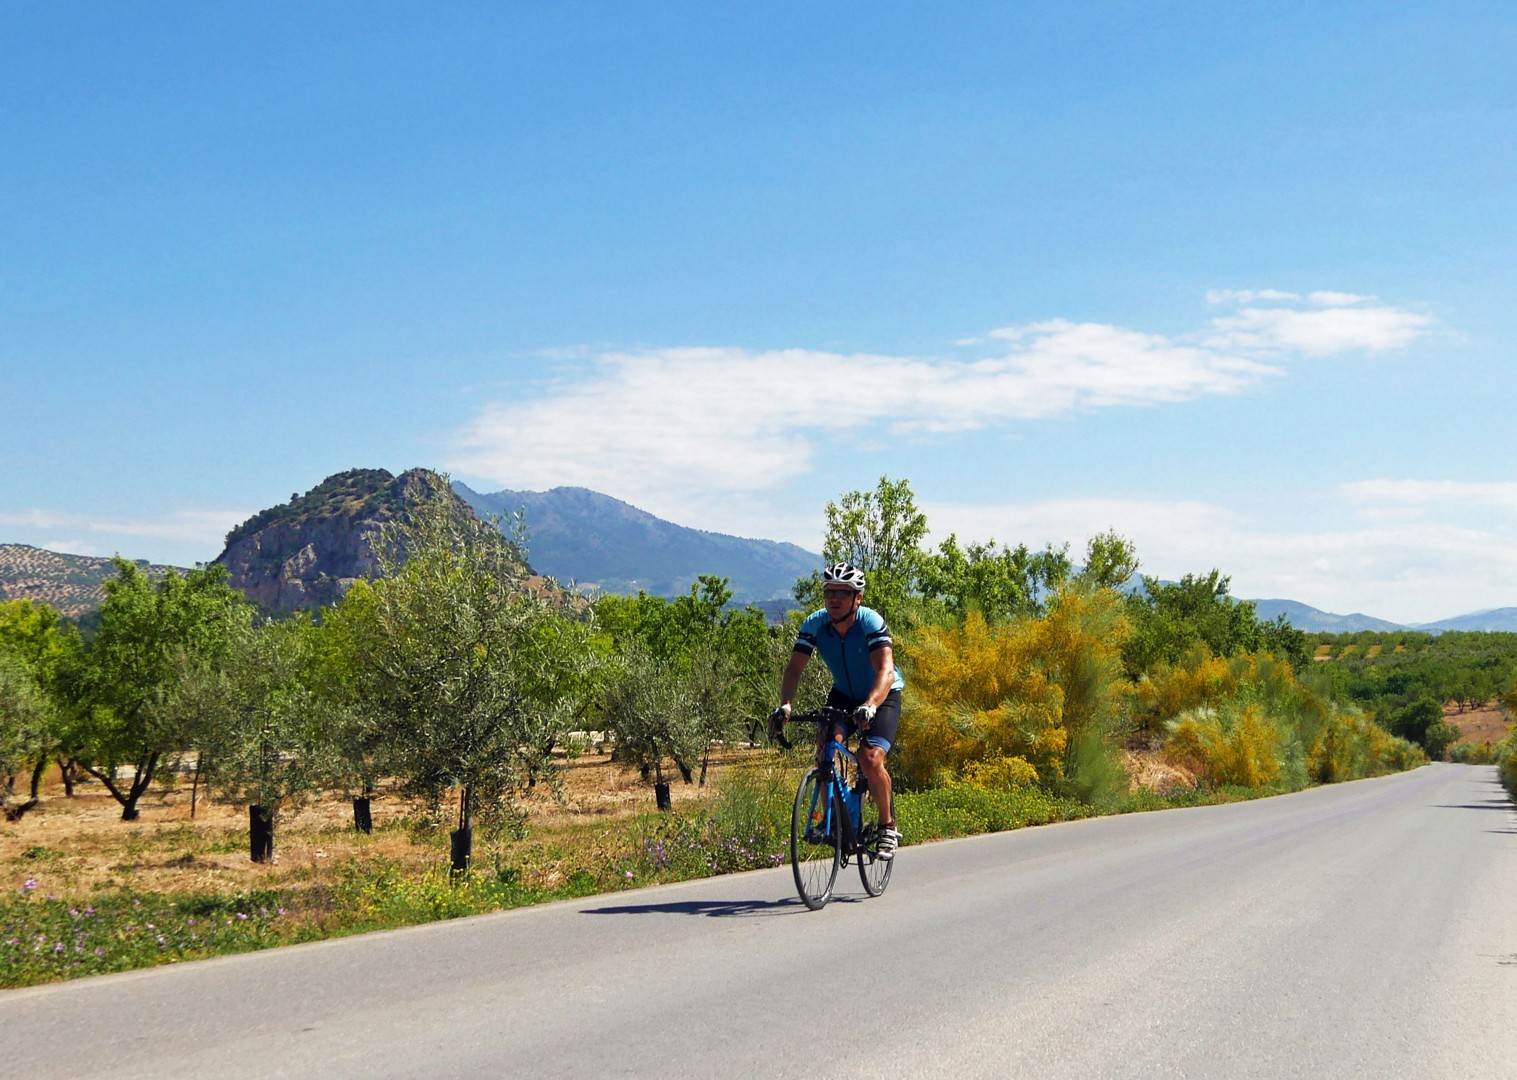 olive-groves-road-cycling-holiday-spain.jpg - NEW! Spain - Basque Country to Andalucia - 21 Day - Road Cycling